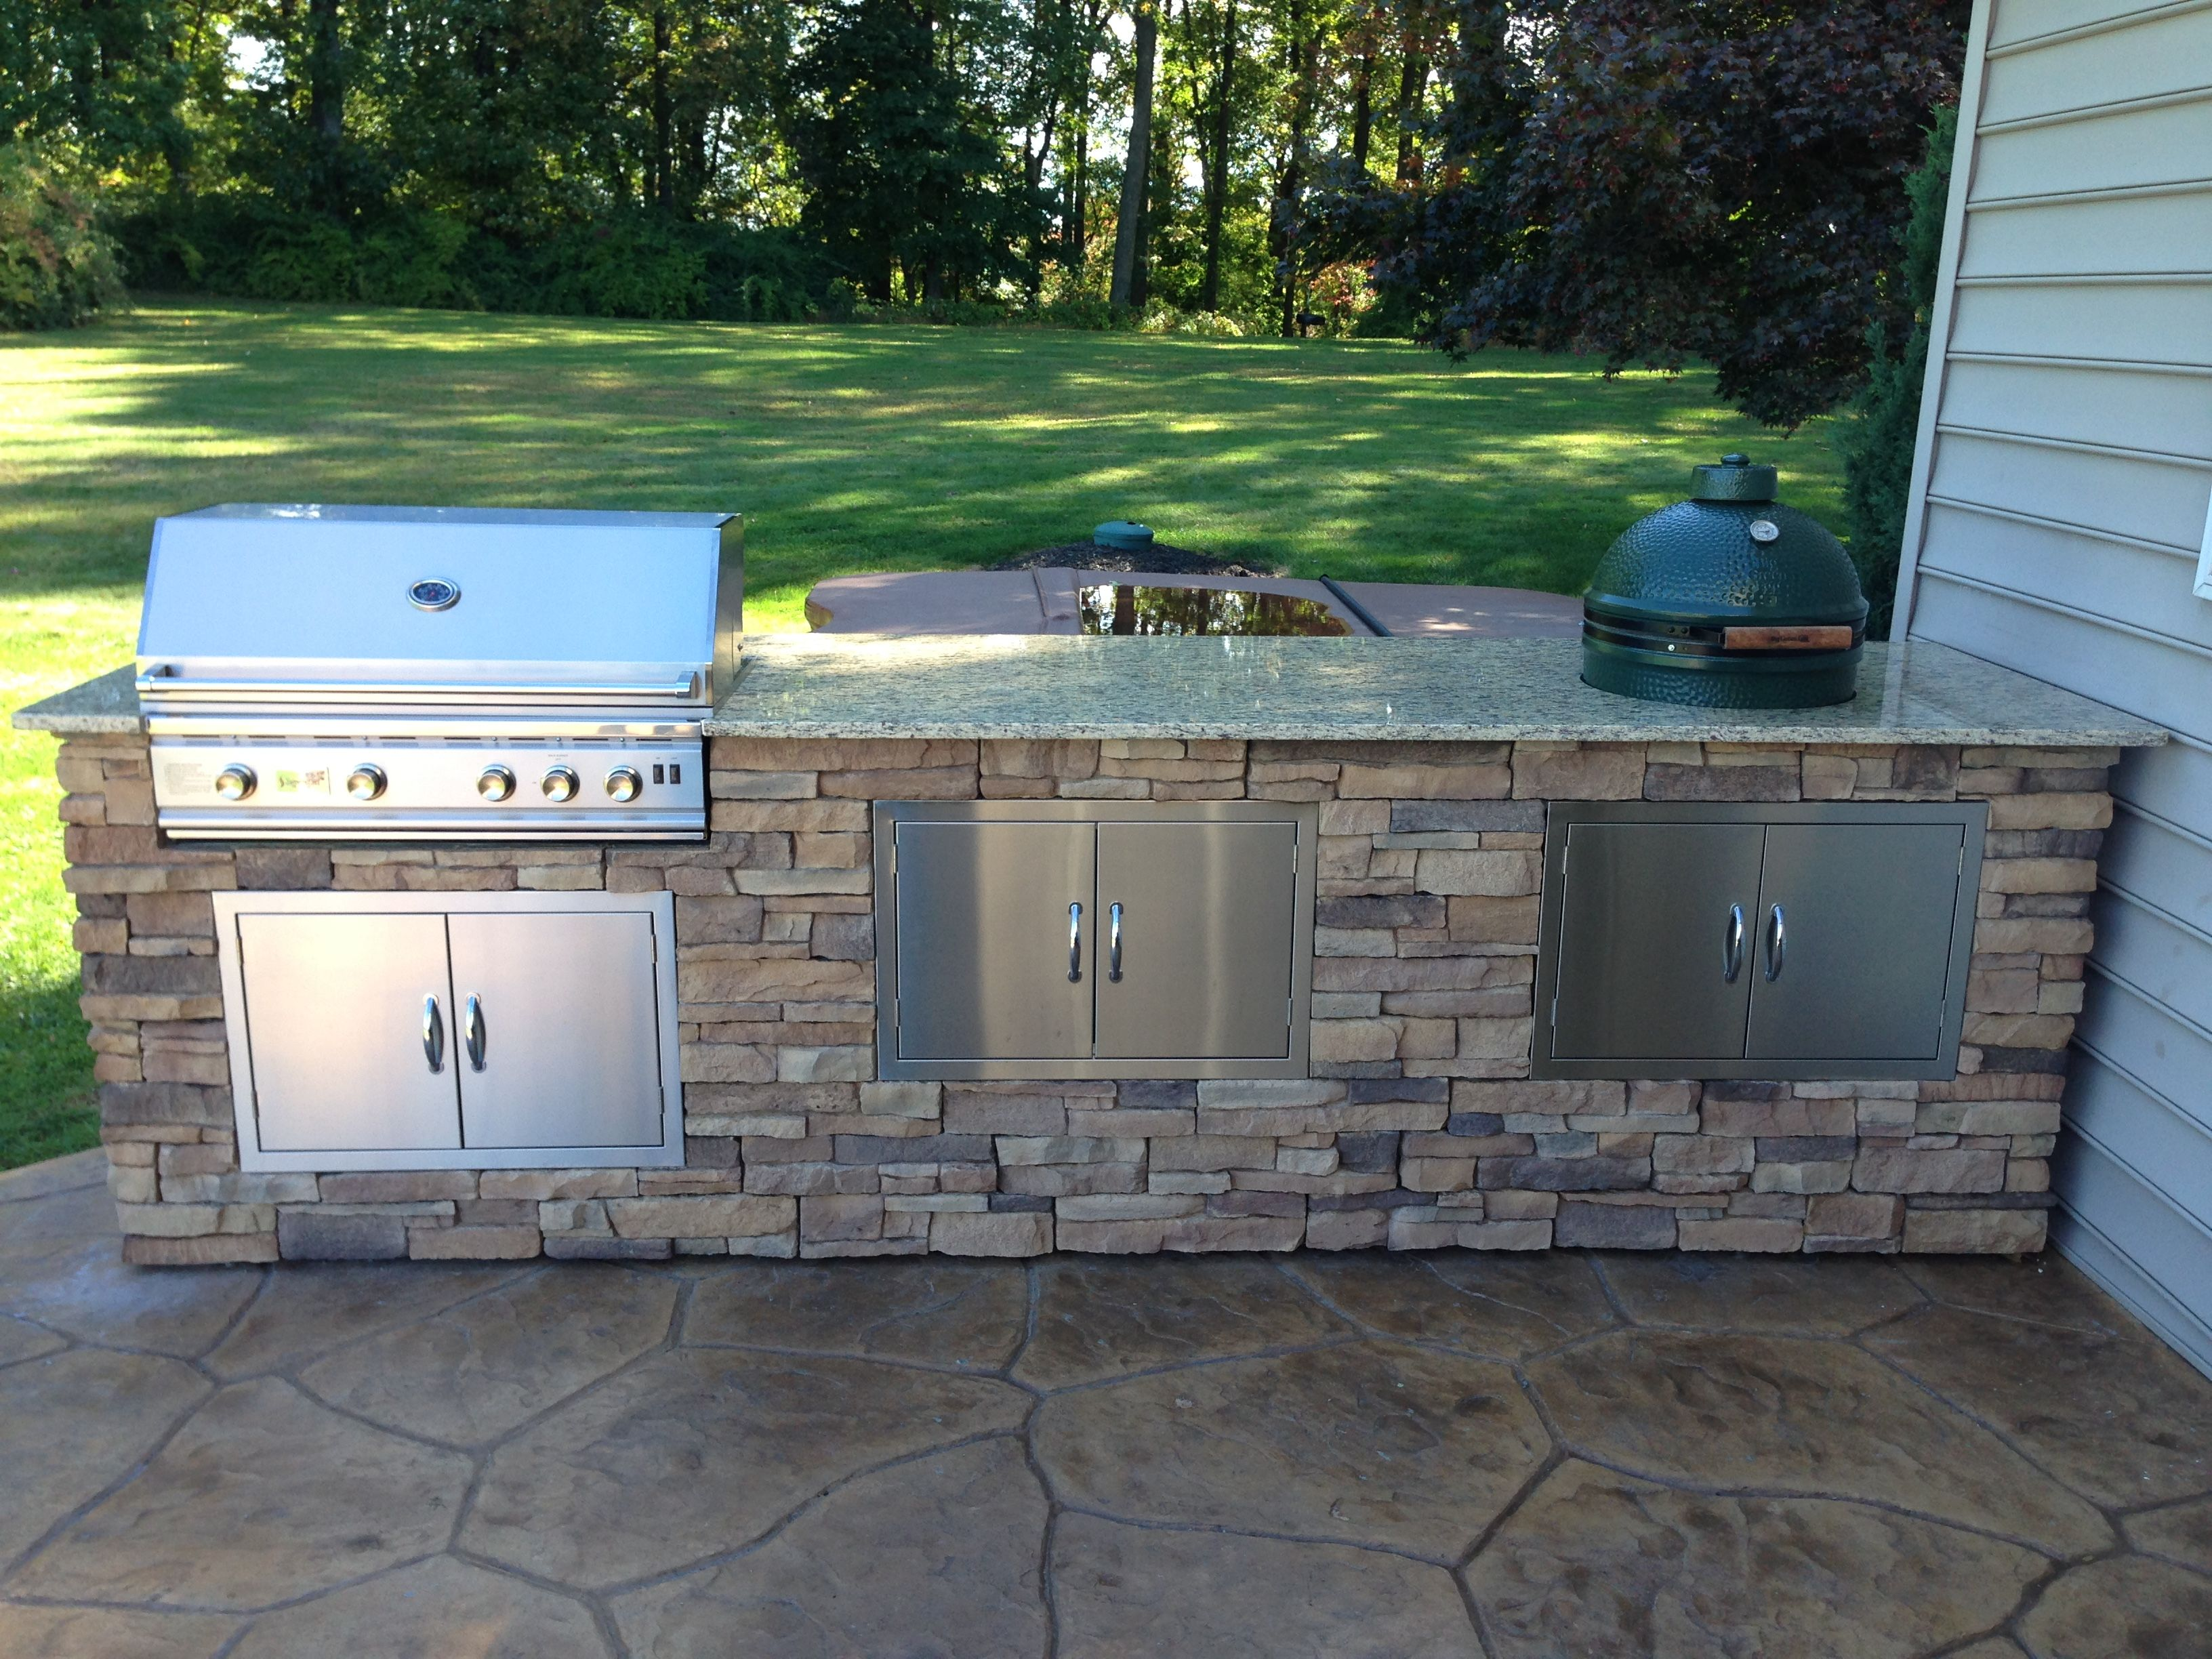 Bret Webster Built This Amazing Bbq Island With Bbq Coach Pro Panel Frame Kits Backyard Bar Backyard Screened Porch Designs